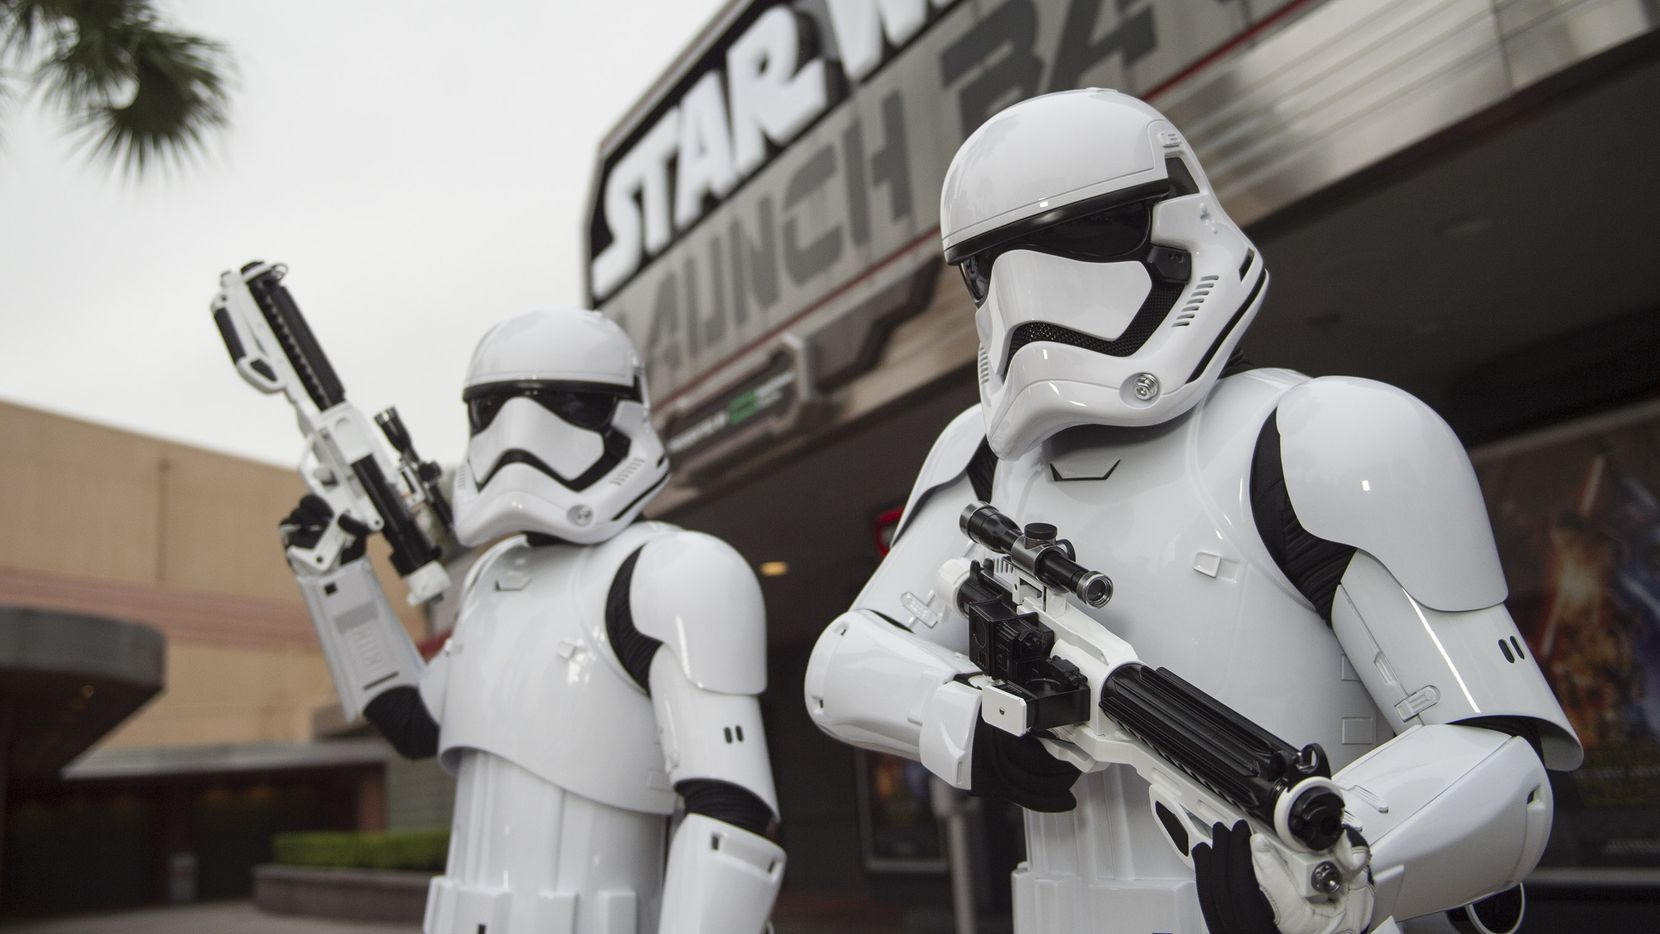 Want stormtroopers at your baby shower? It's totally doable at Walt Disney World in Orlando, Fla. — provided you've got a six-figure budget to work with.